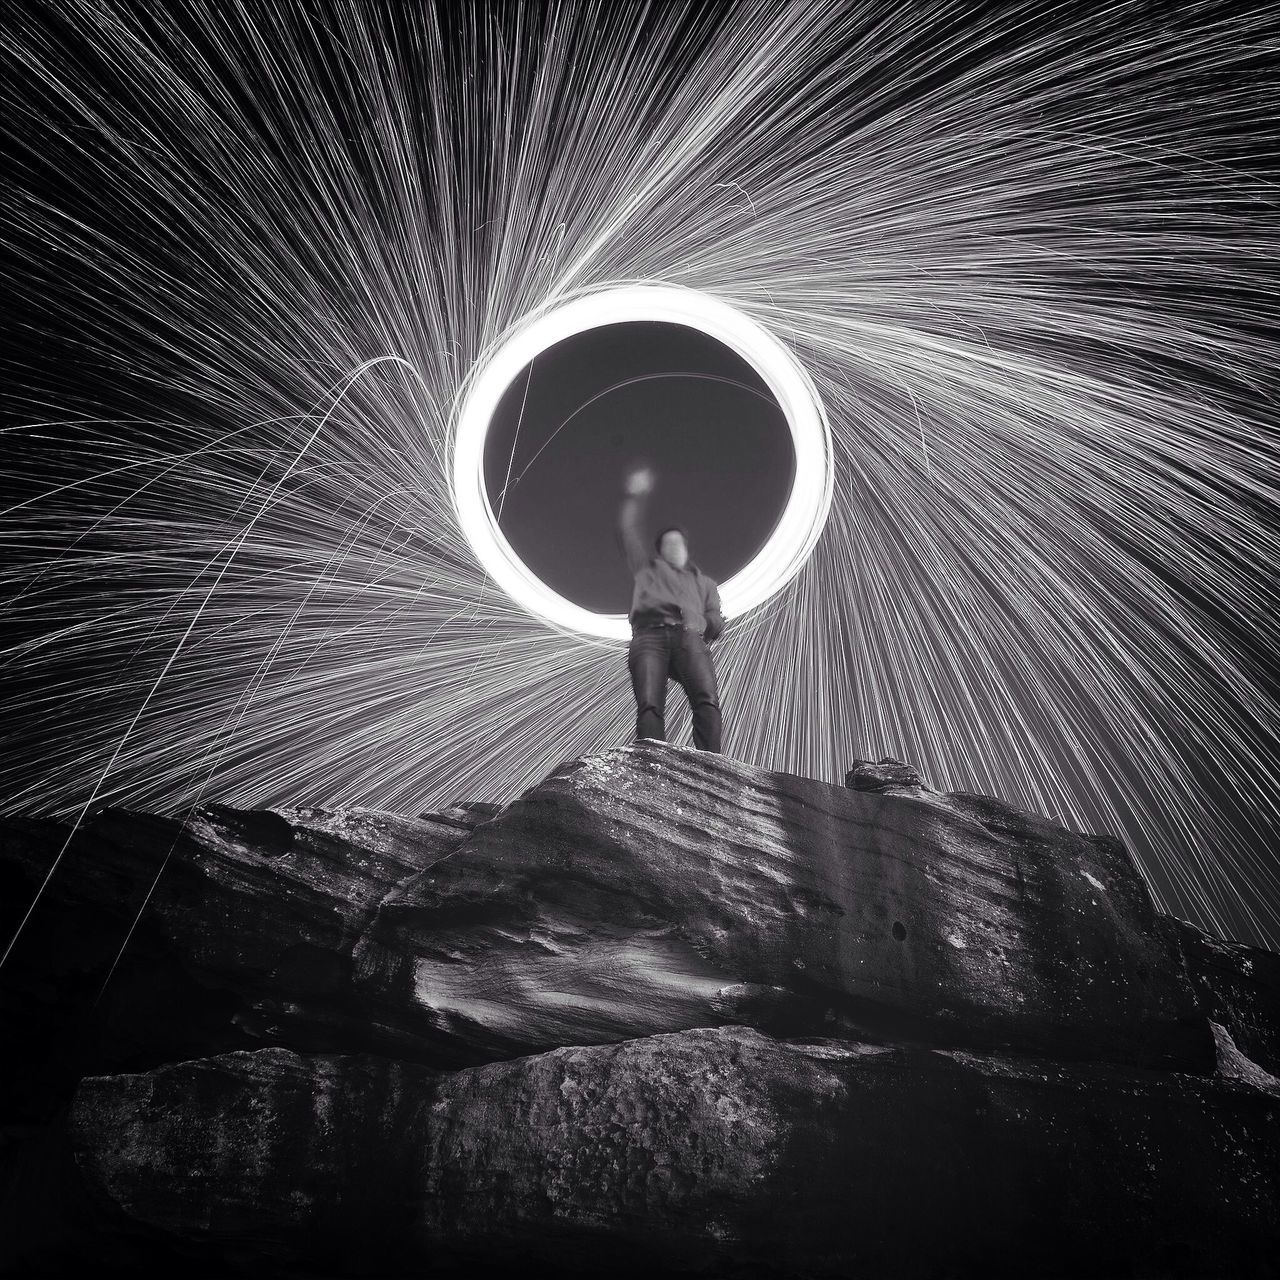 Low angle view of man spinning steel wool on rock at night